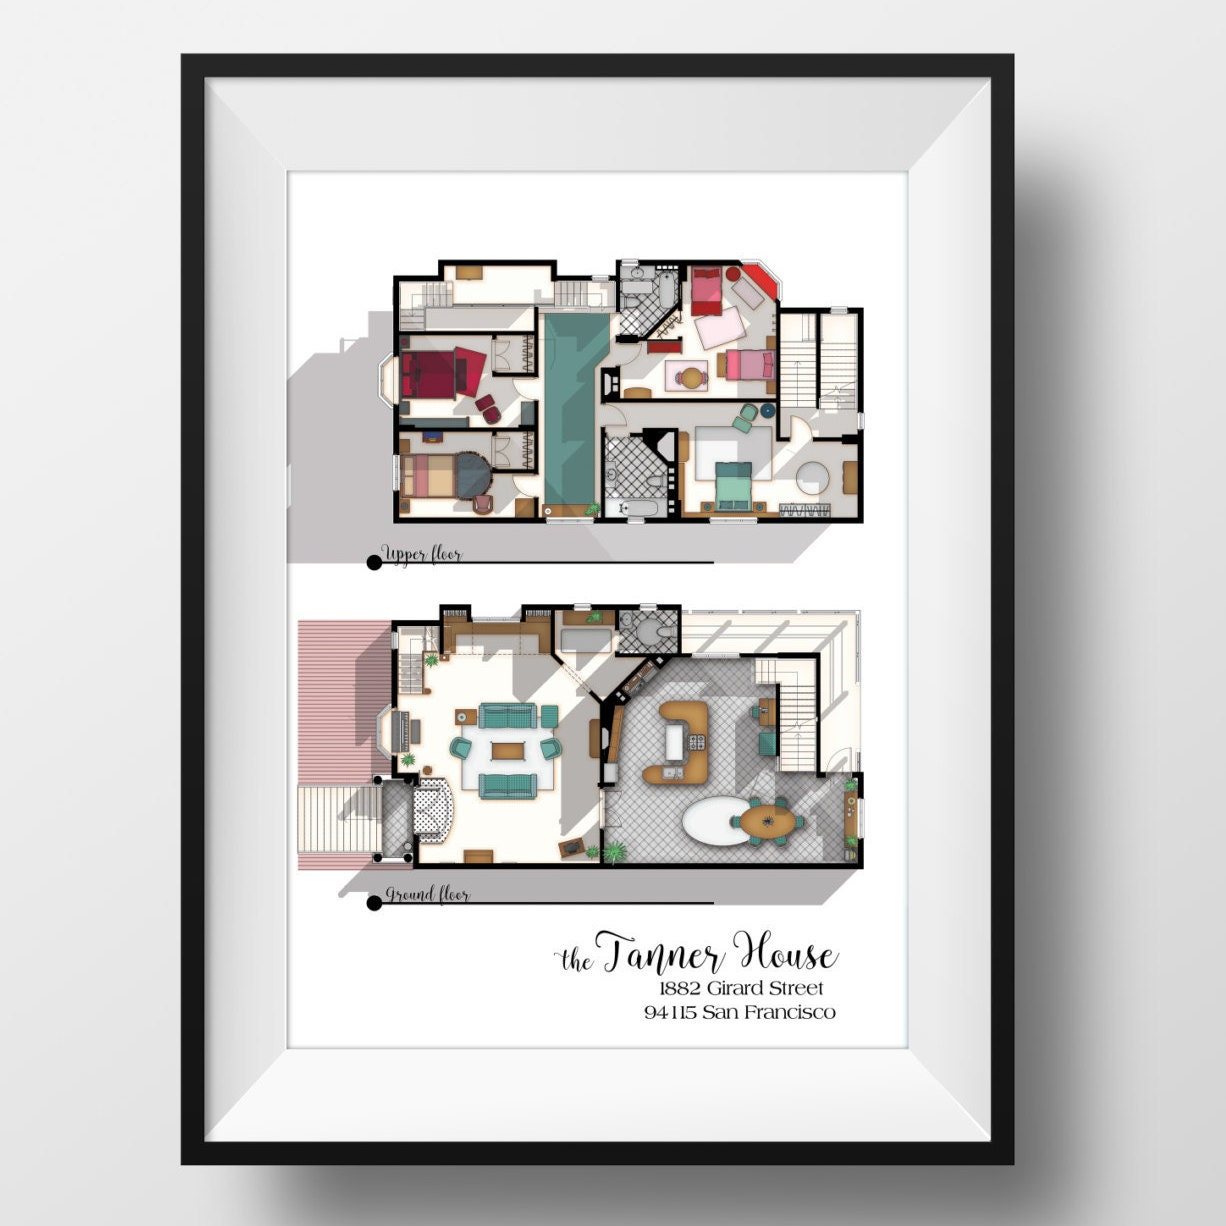 Tv house layouts